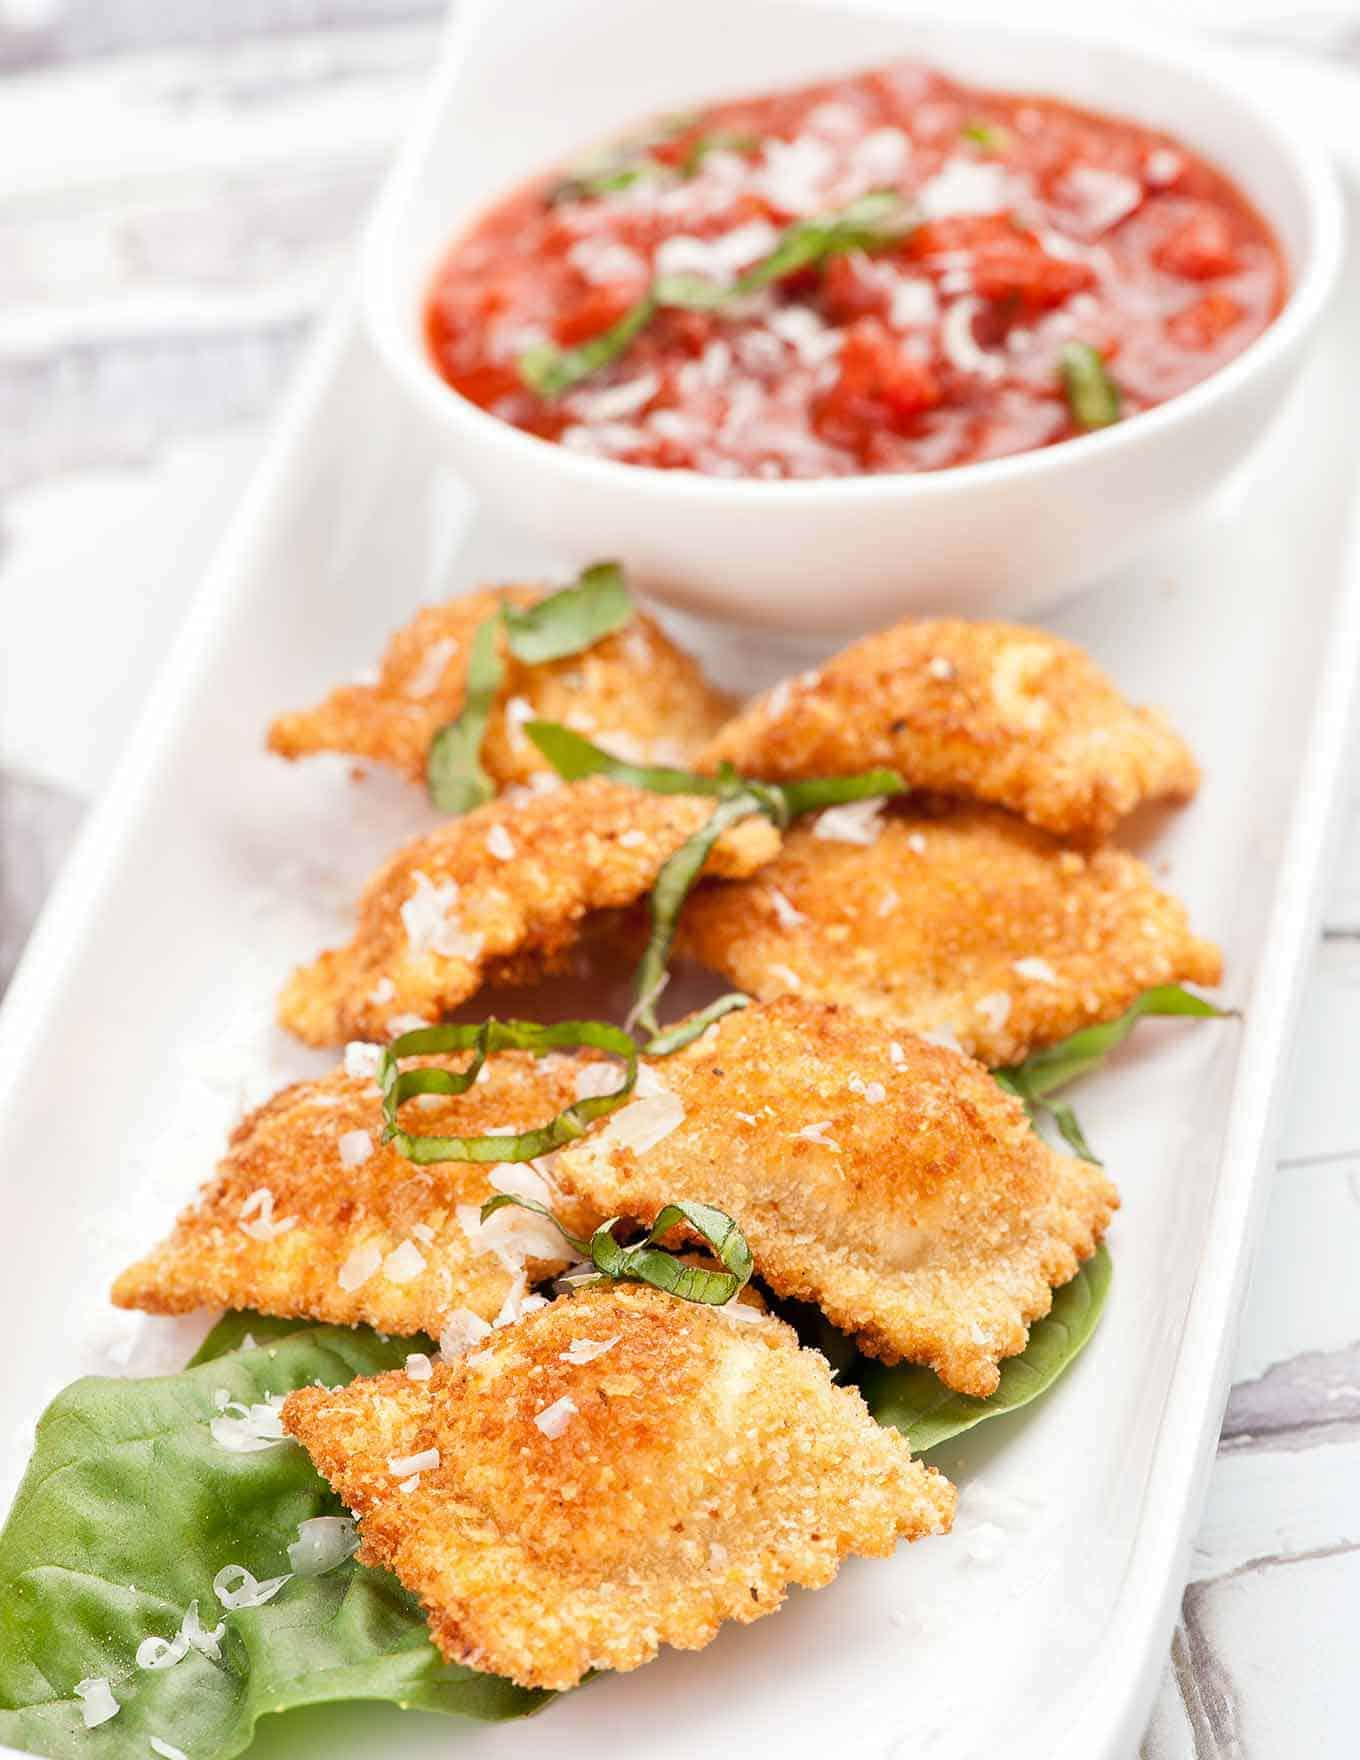 Fried ravioli on serving plate with marinara dipping sauce